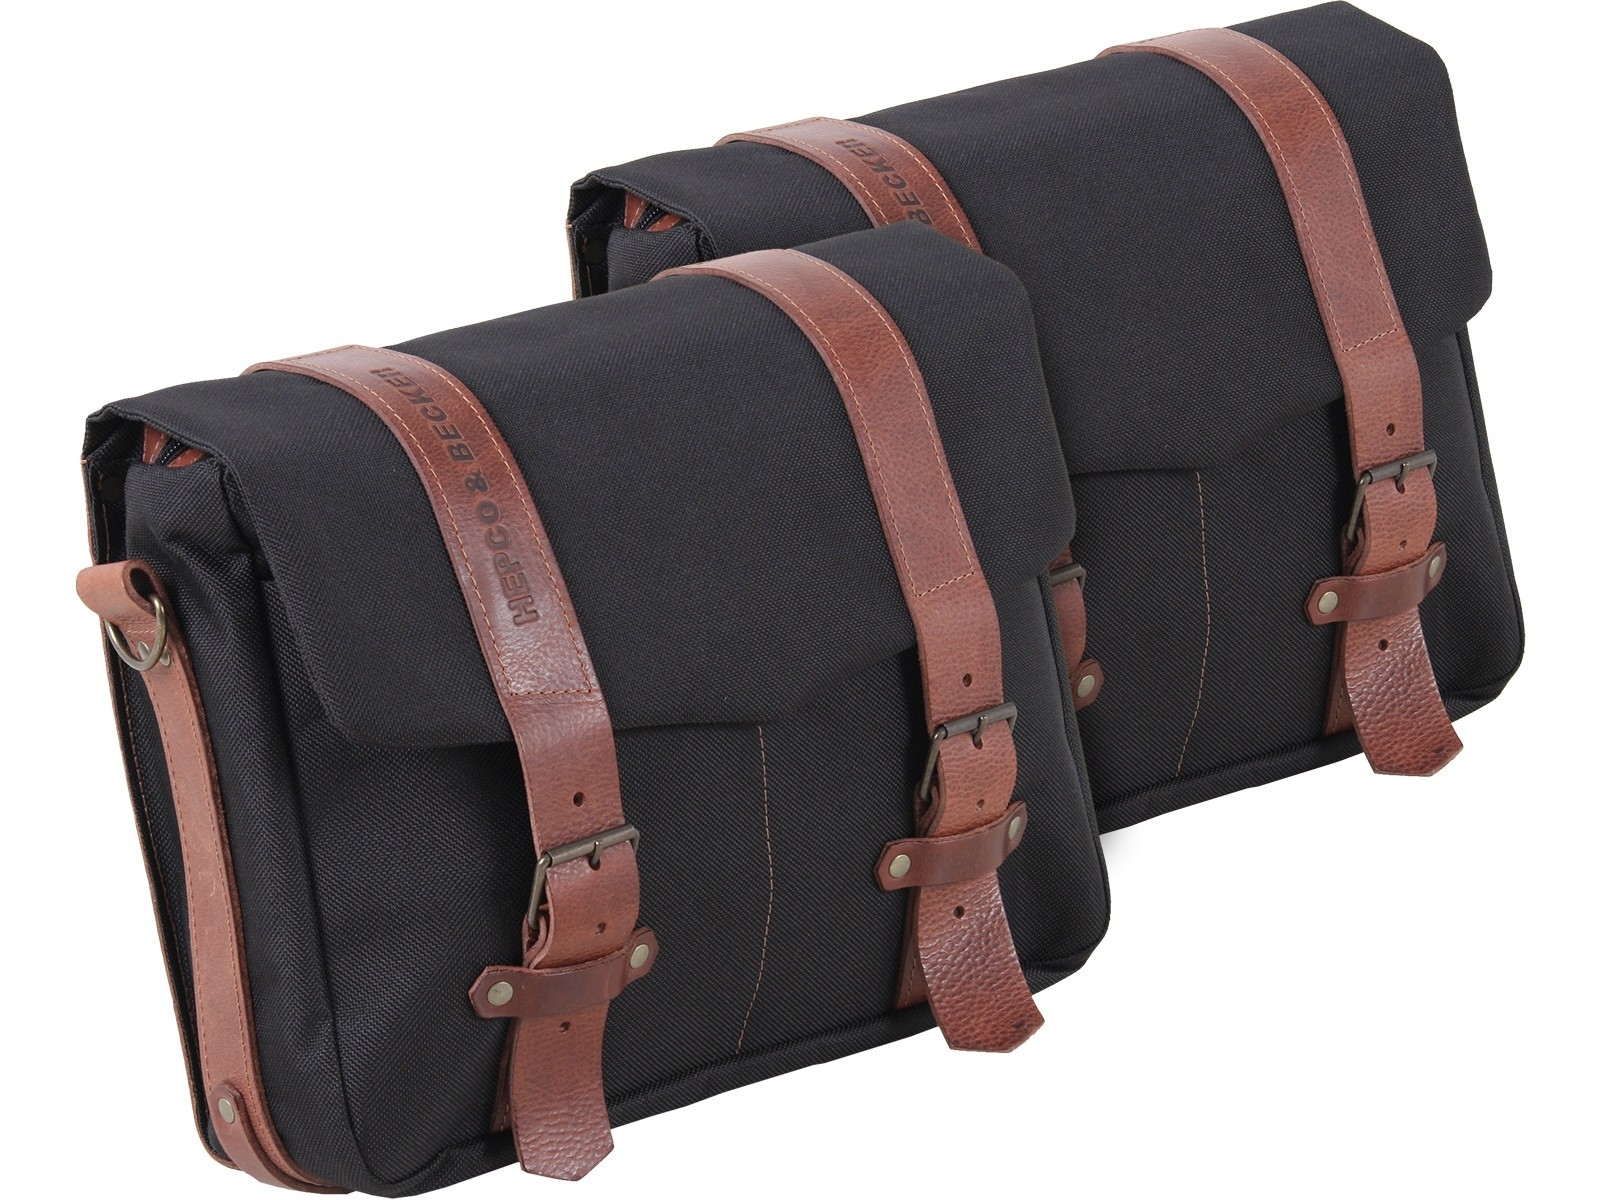 Hepco & Becker Legacy Courier Bag Set (Large Pair) for C-Bow Carrier - Black